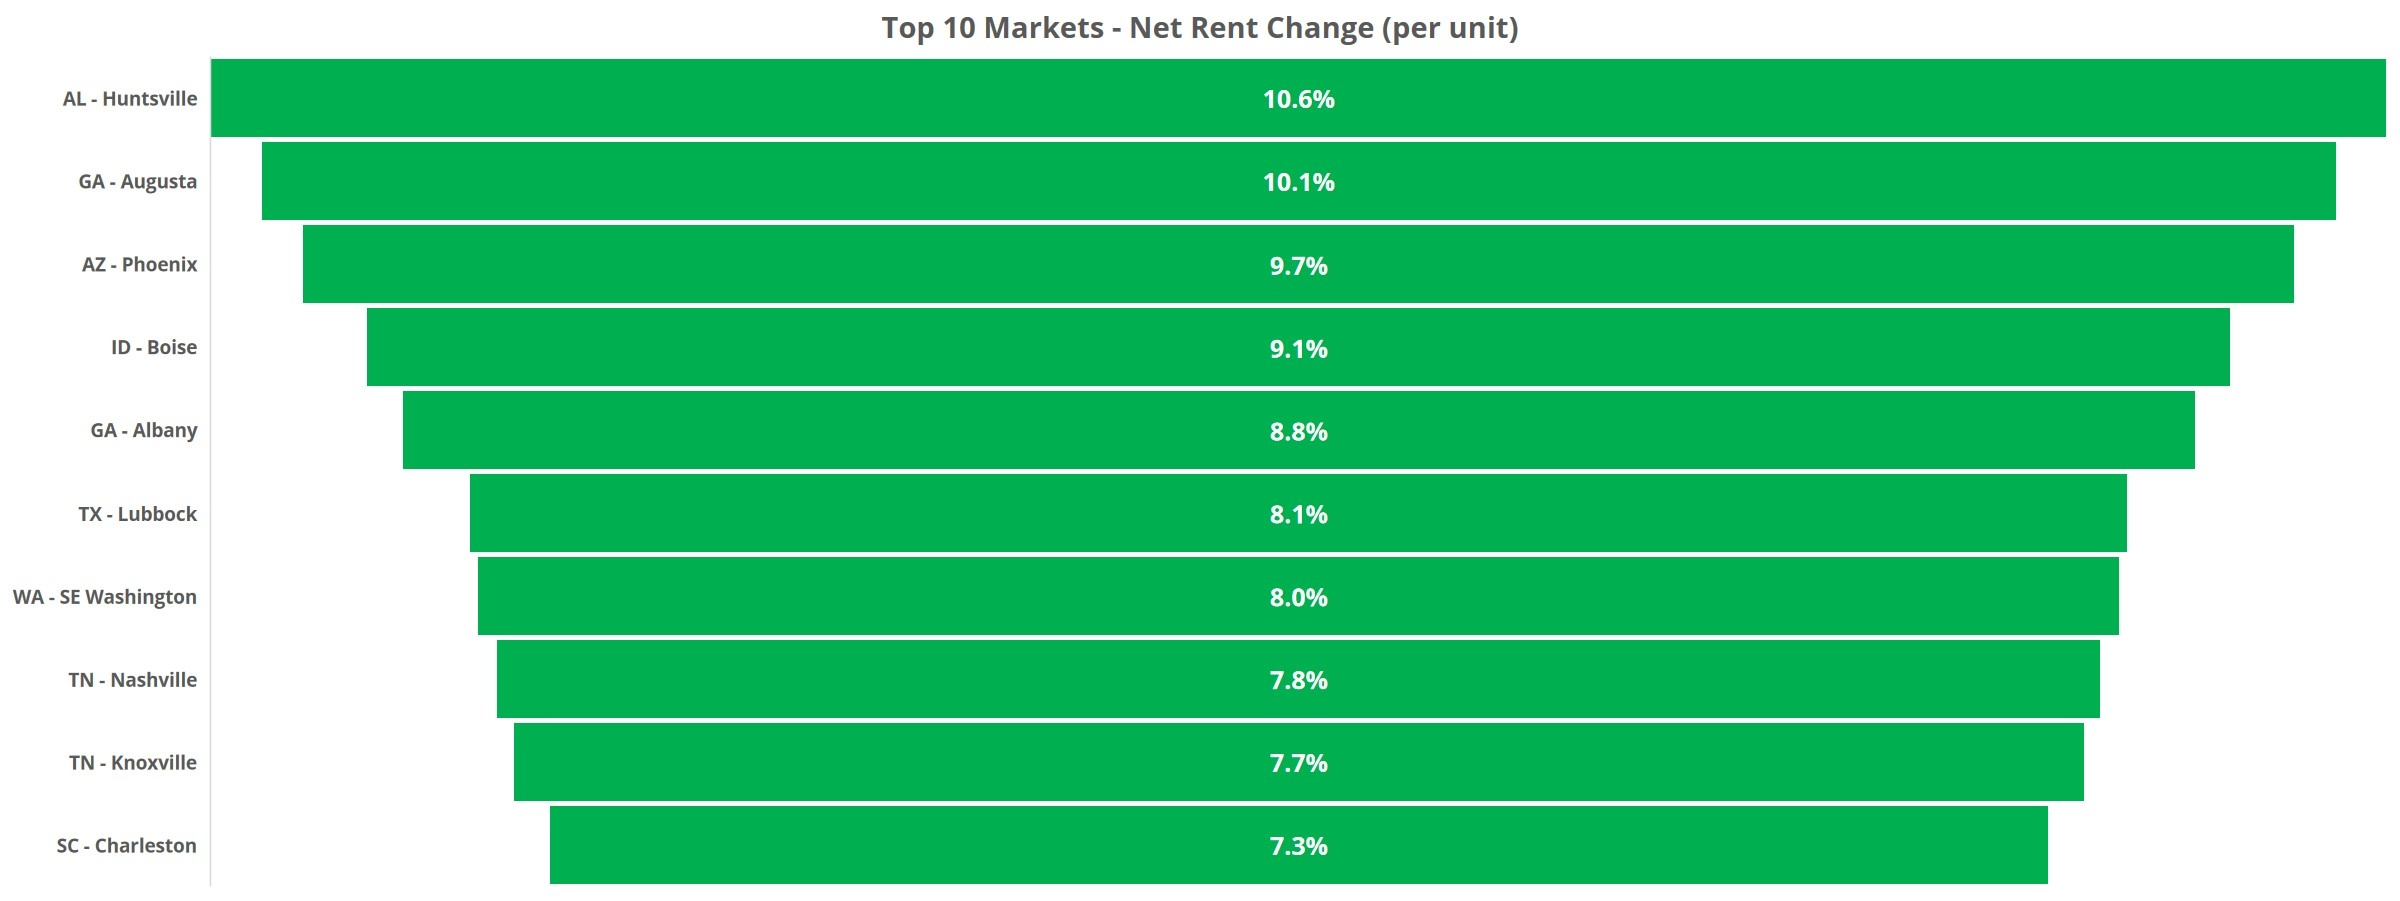 Year in Review Top 10 Markets Net Rent Change